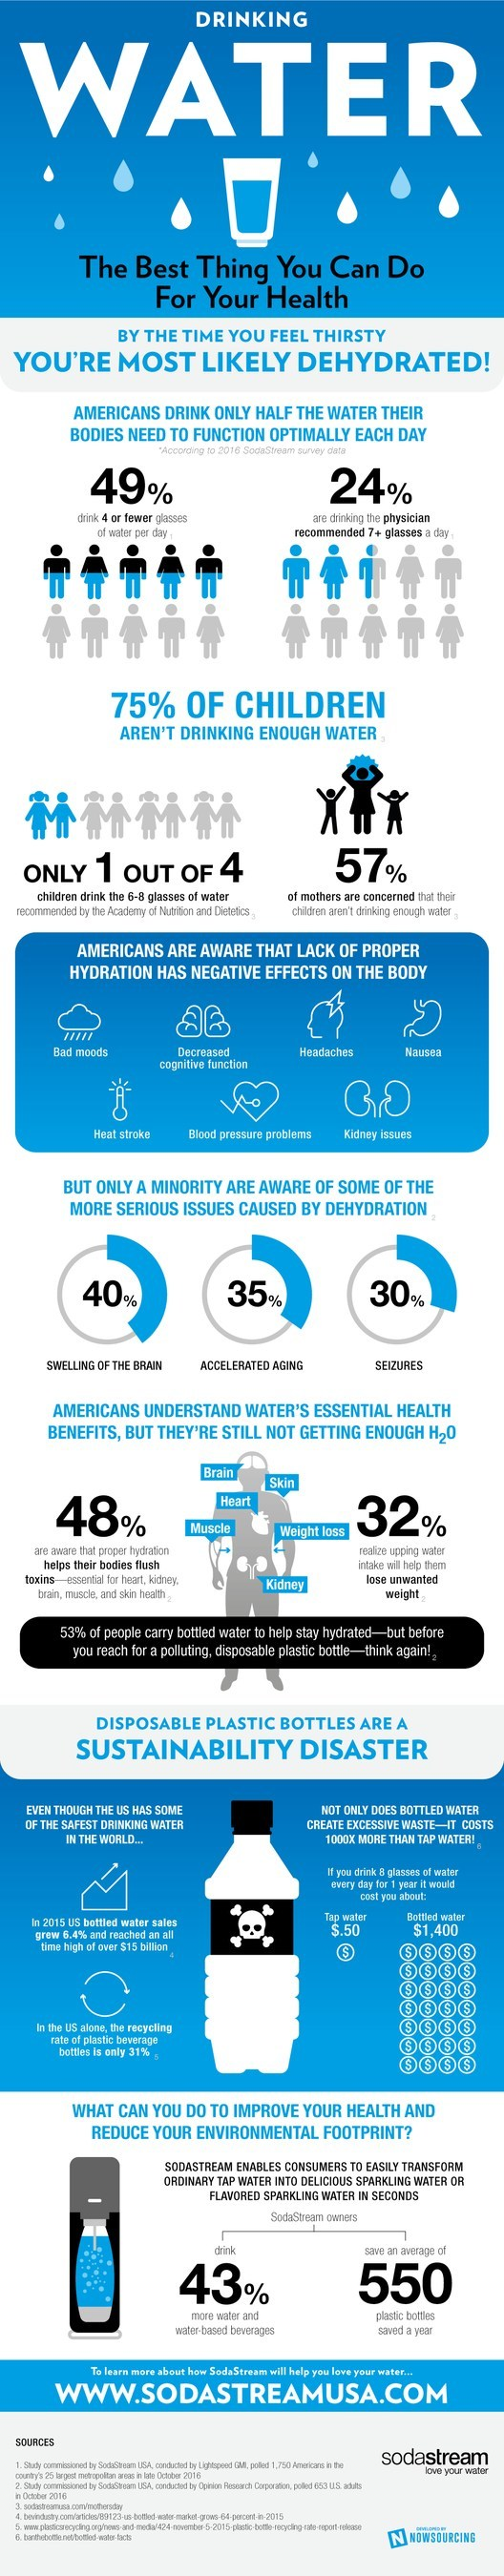 SodaStream Survey Reveals 49% of Americans Don't Drink Enough Water, Despite 48% Knowing that Proper Hydration May Help Achieve Health Goals